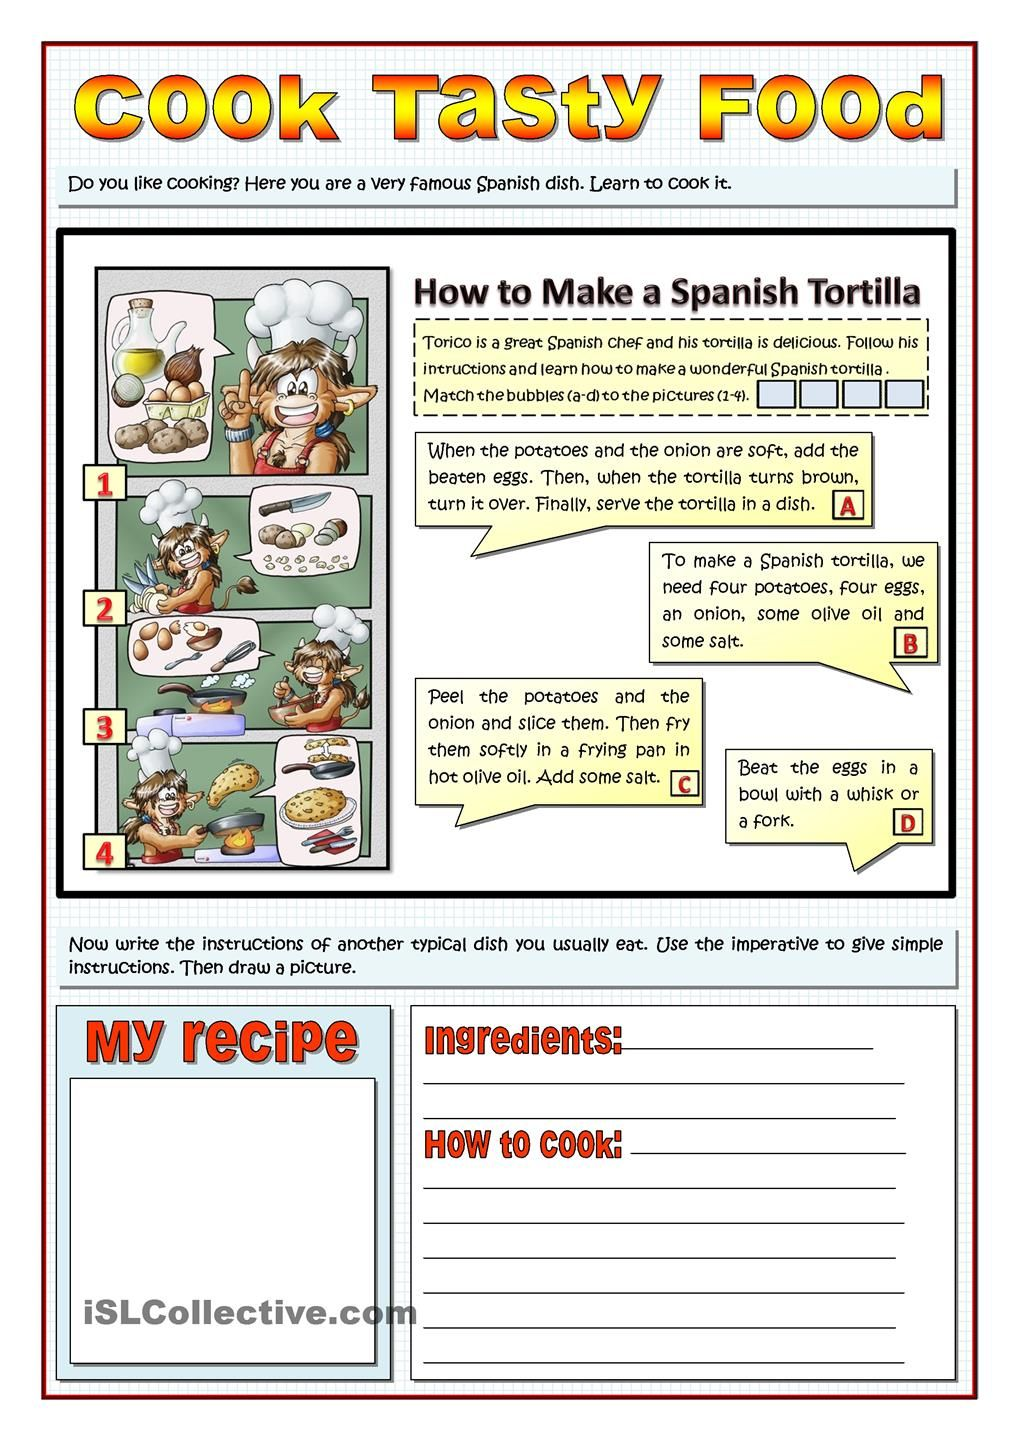 Workbooks spanish food worksheets : COOK TASTY FOOD - RECIPES AND IMPERATIVES | School | Pinterest ...